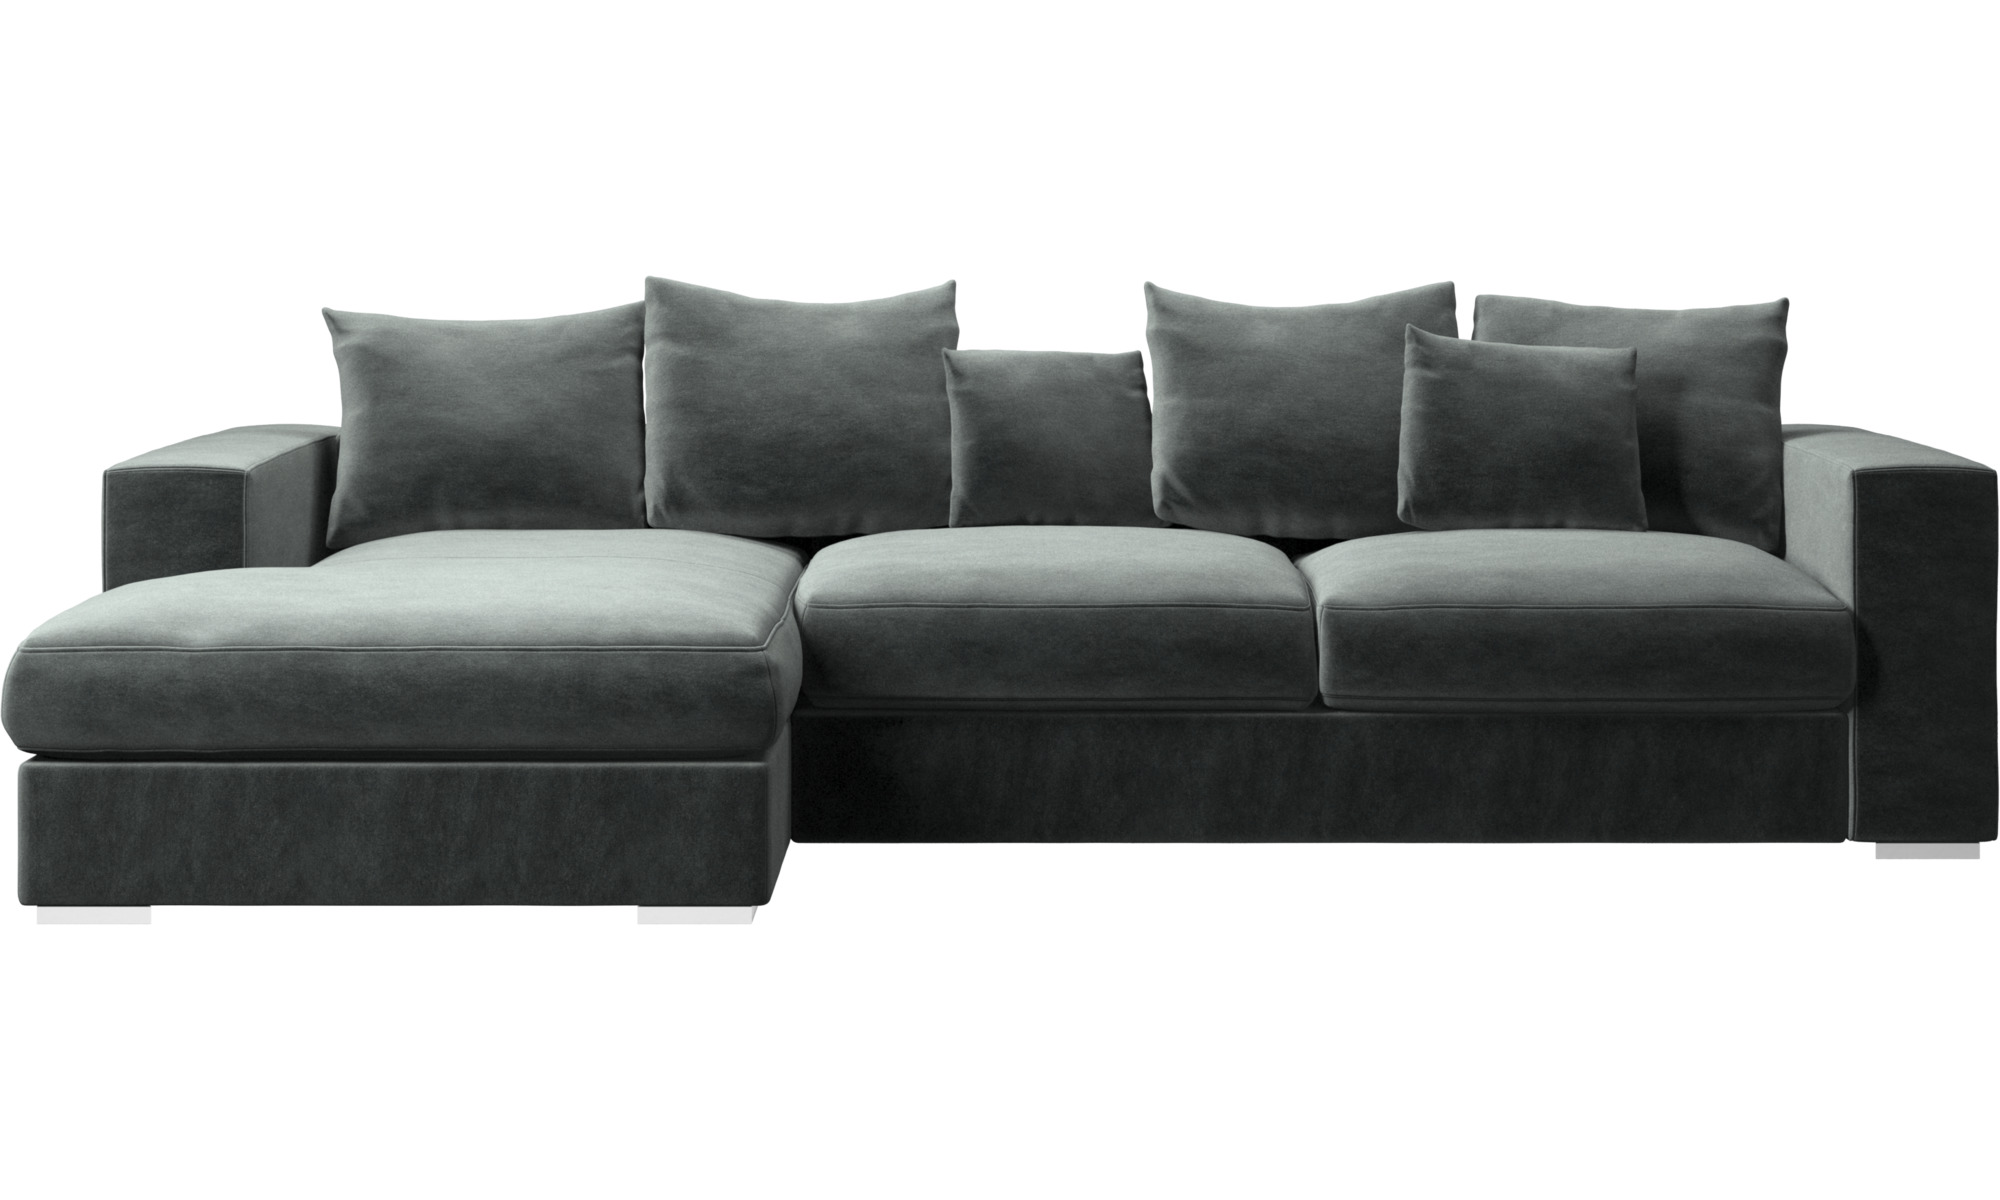 chaise lounge sofas cenova sofa with resting unit boconcept. Black Bedroom Furniture Sets. Home Design Ideas